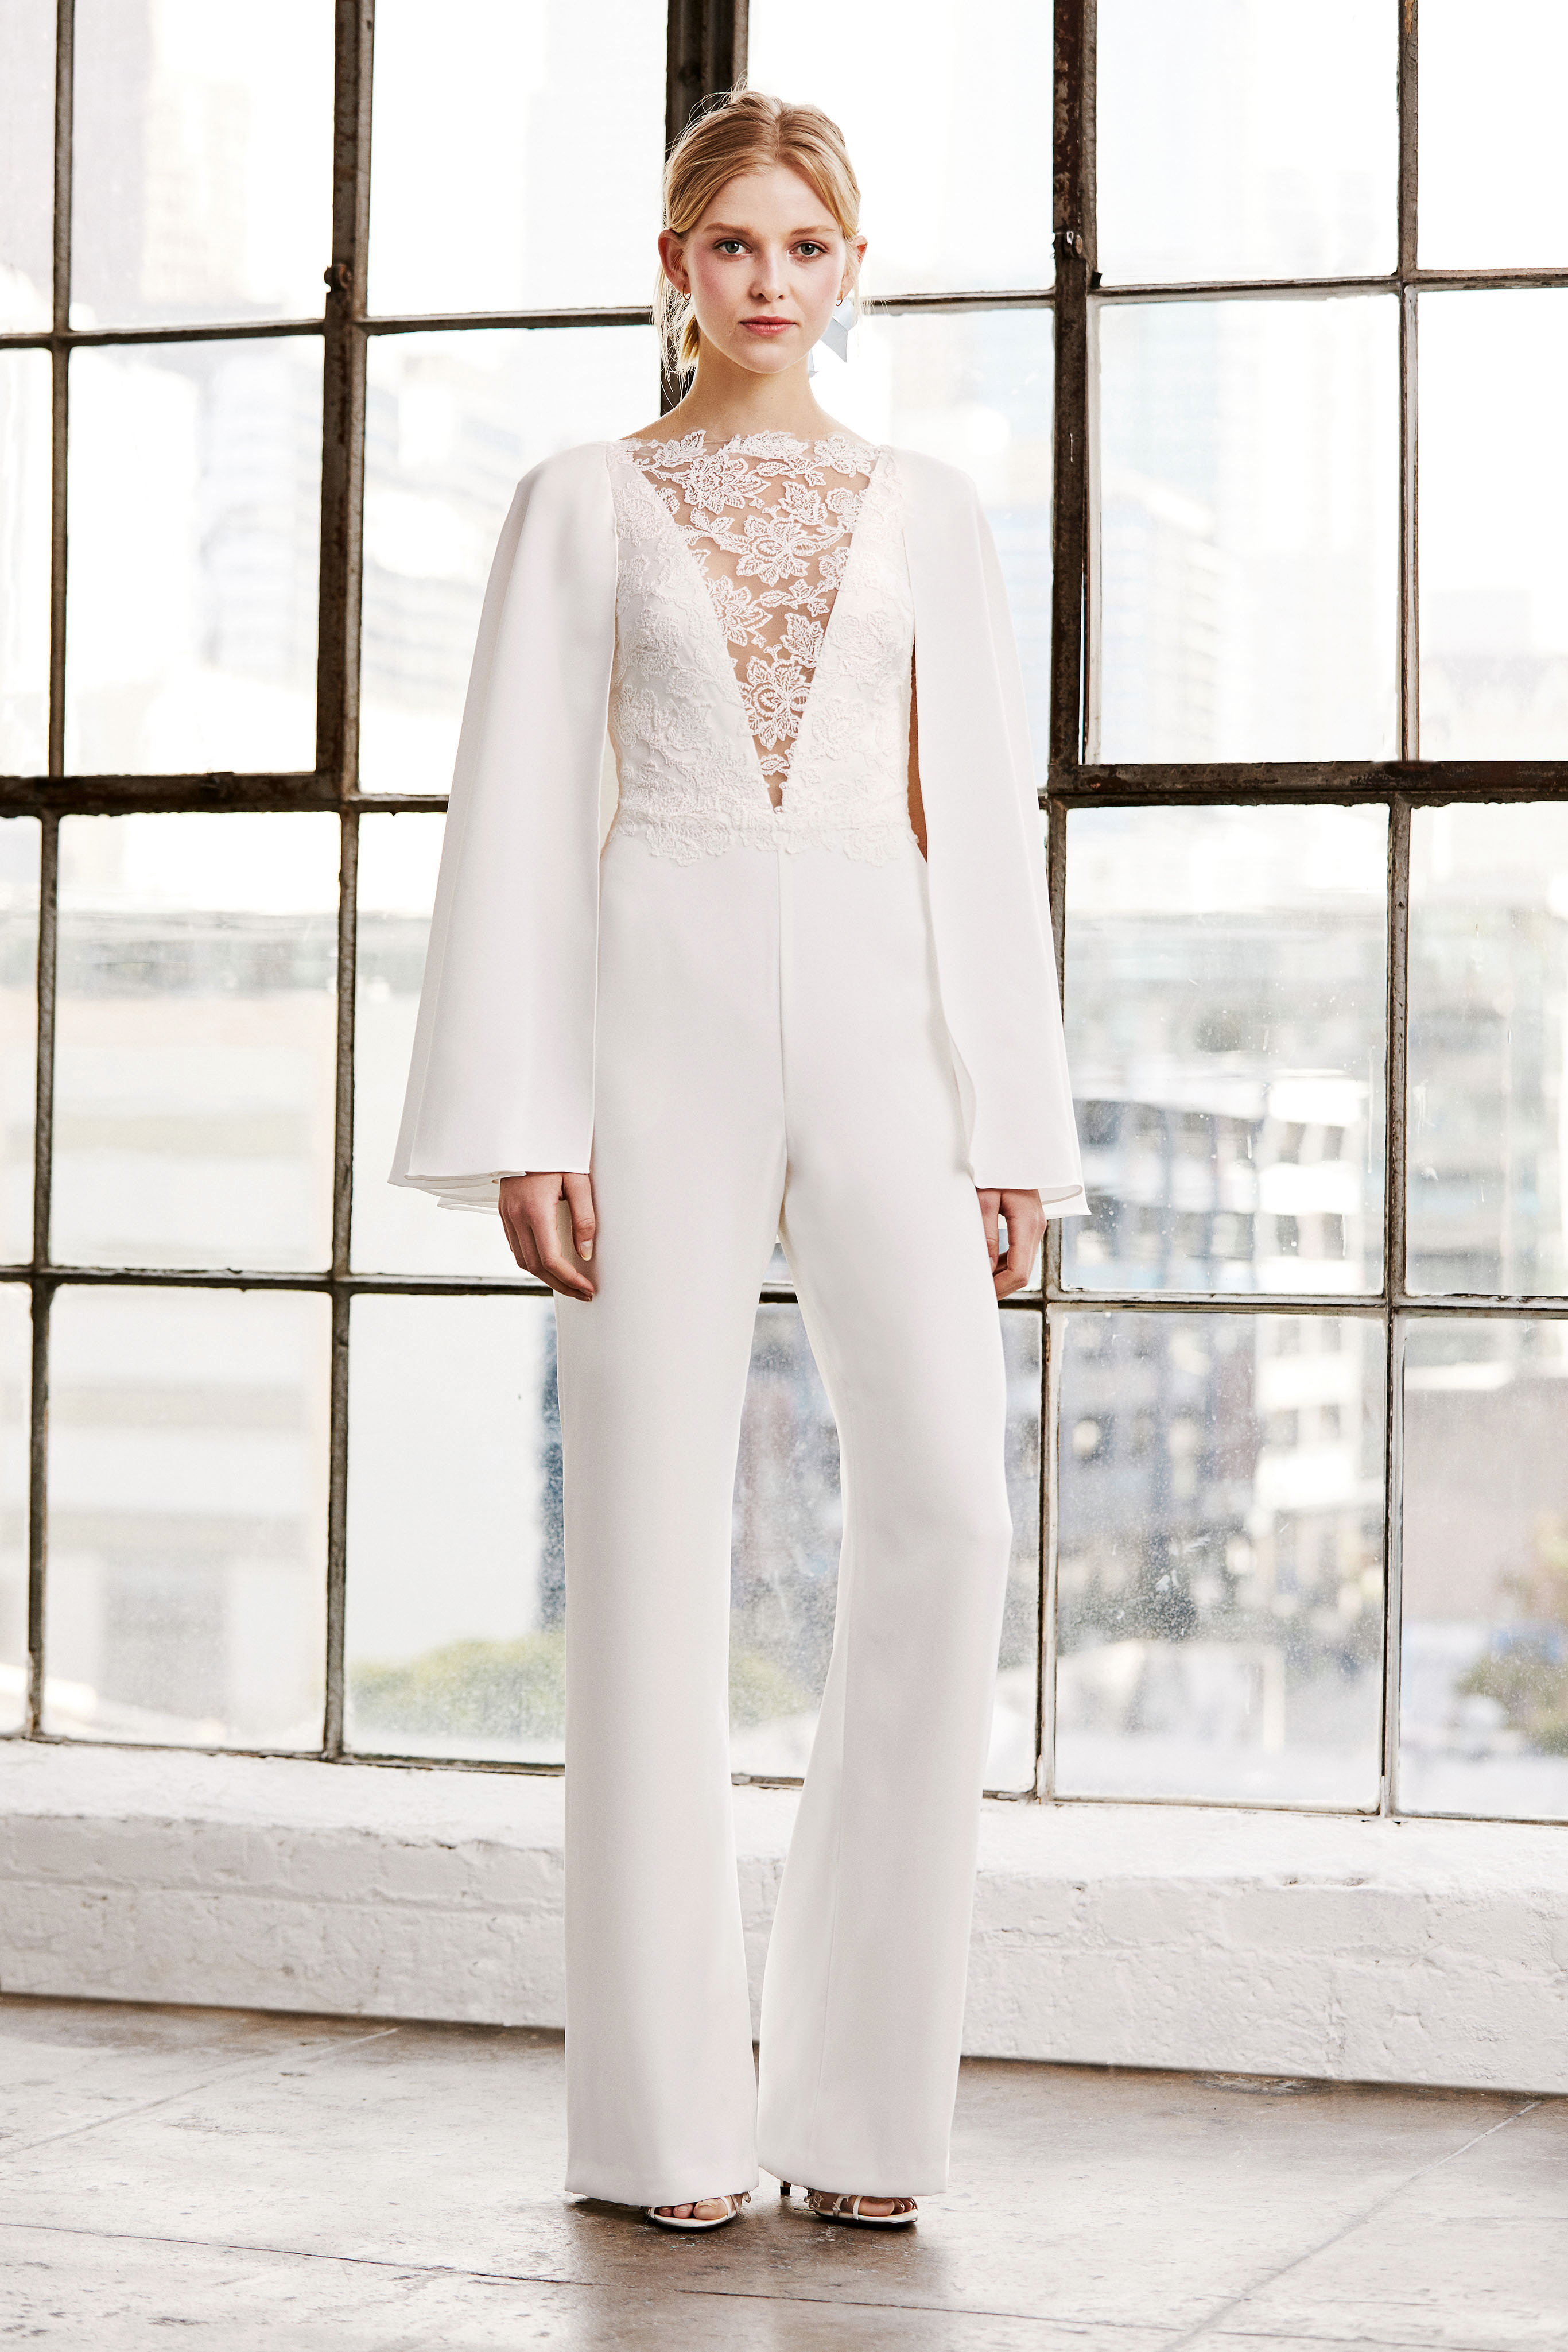 tadashi shoji wedding dress spring 2019 deep v long sleeves jump suit pants